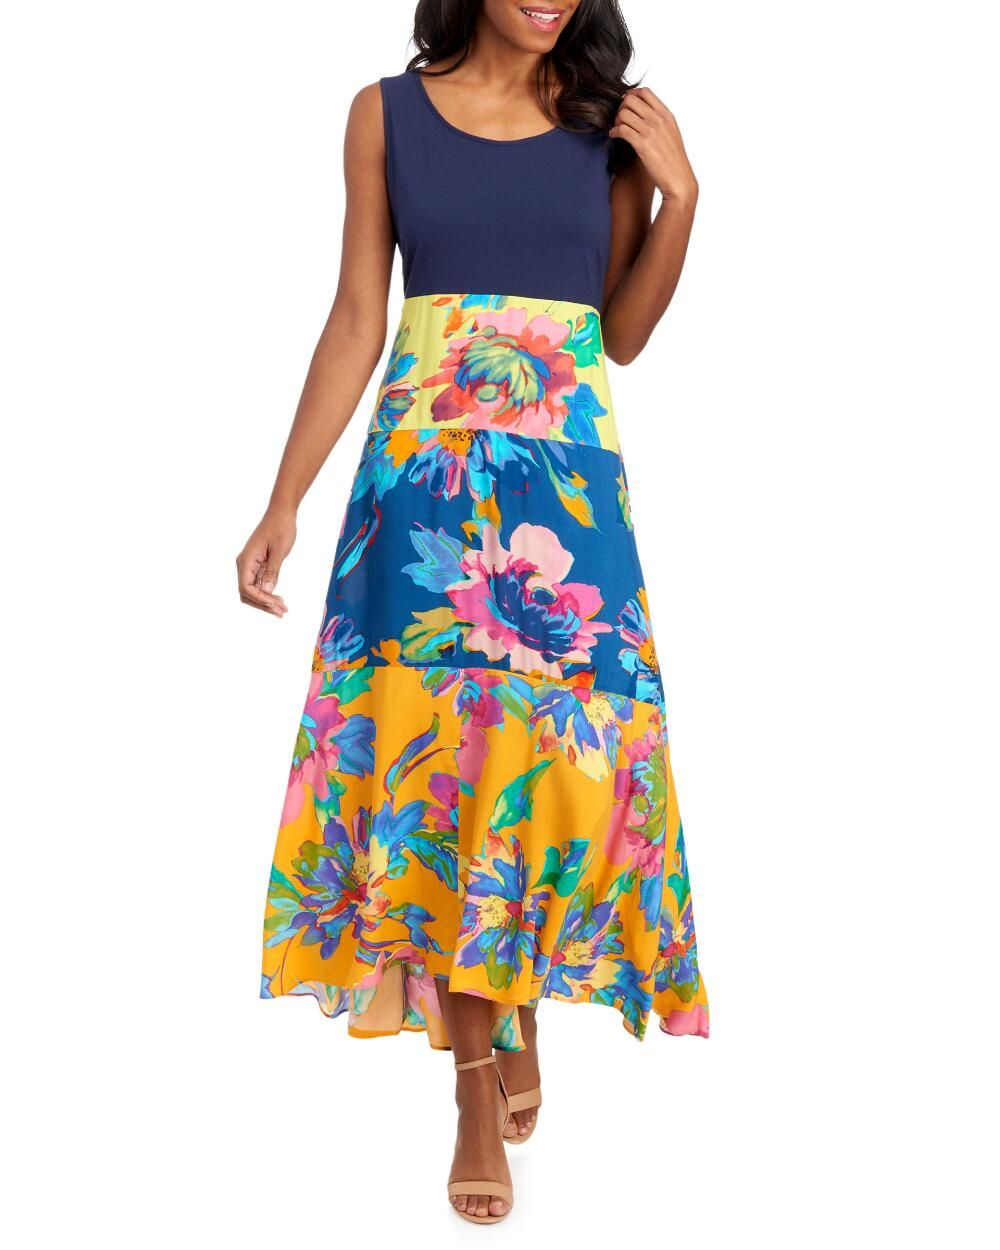 Ivy Lane Floral Tiered Maxi Dress Occasion Maxi Dresses Tiered Maxi Dress Warm Weather Fashion [ 1250 x 1000 Pixel ]